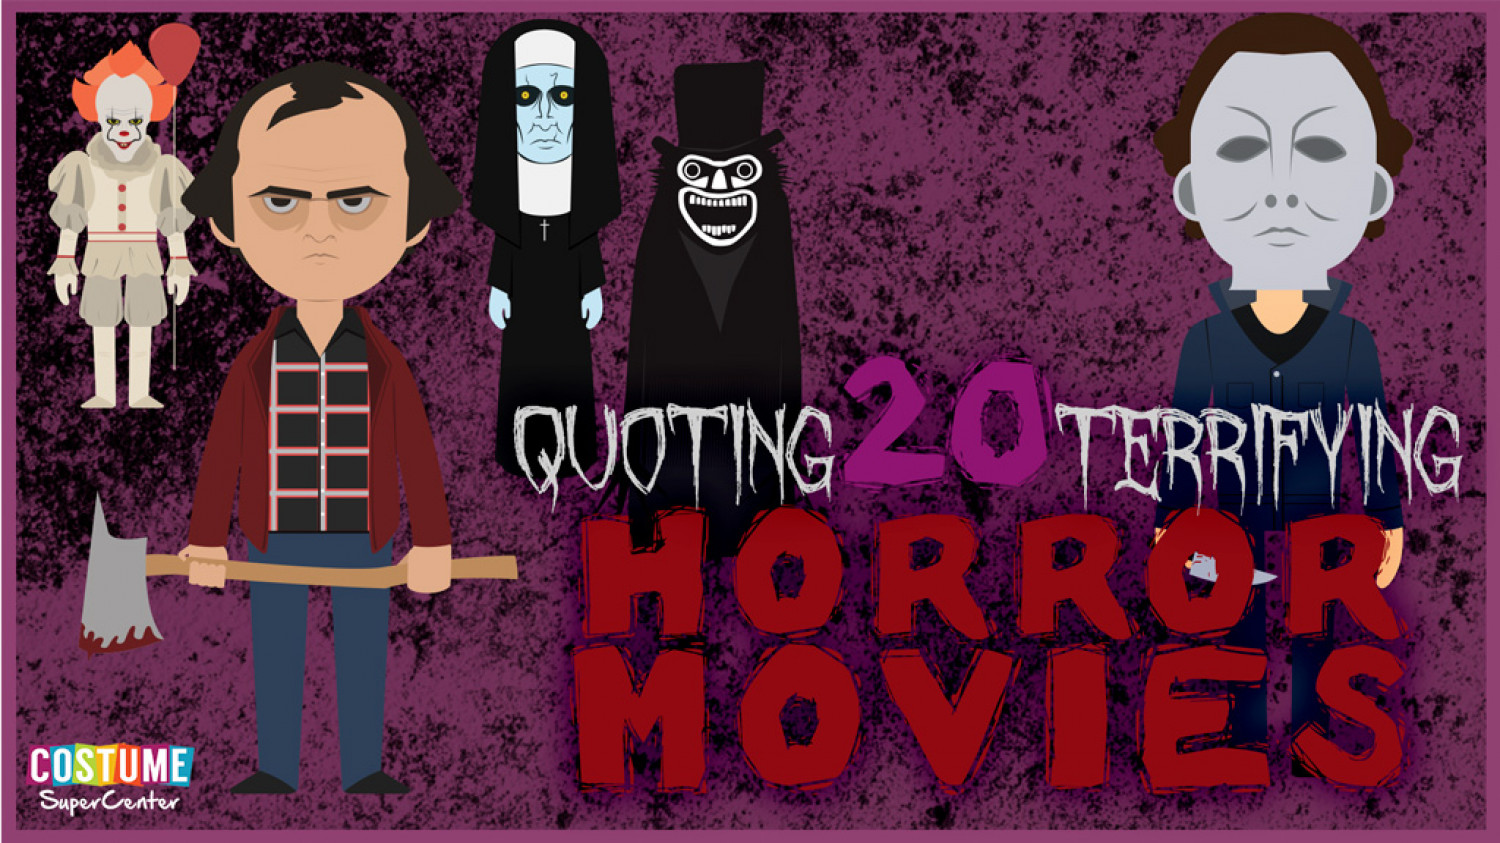 Best 20 Horror Movie Quotes of All Time Infographic